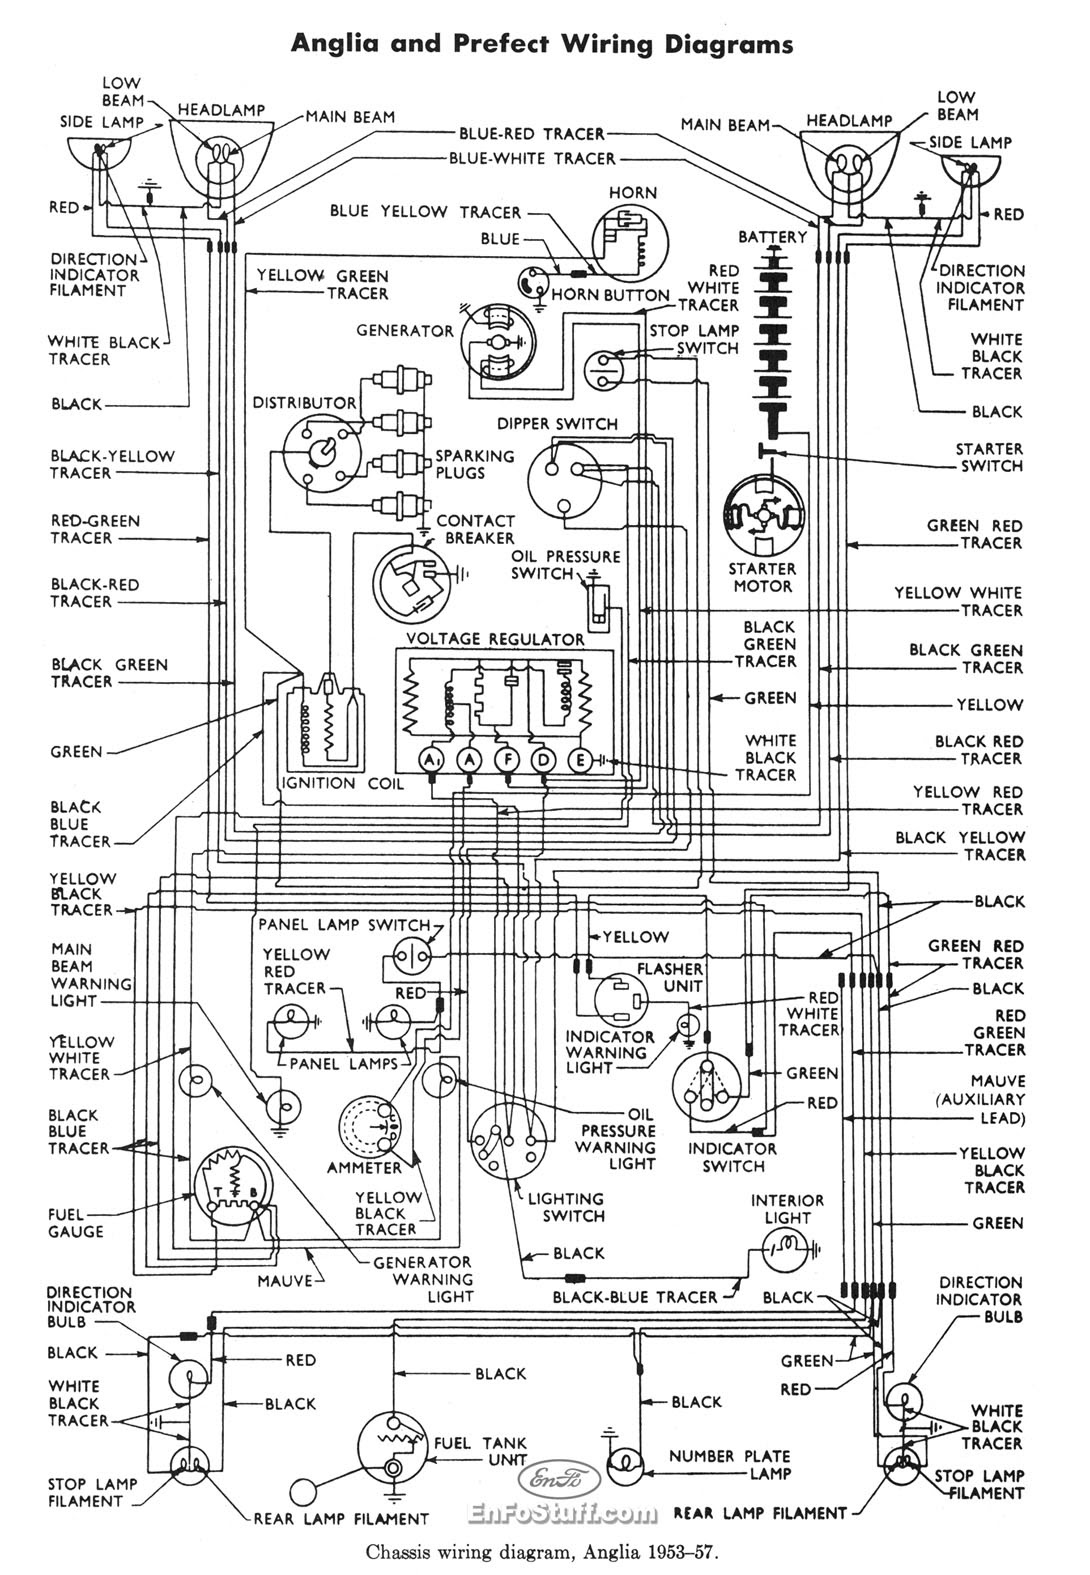 system schematic 6610 hydraulic ford Wiring Anglia for